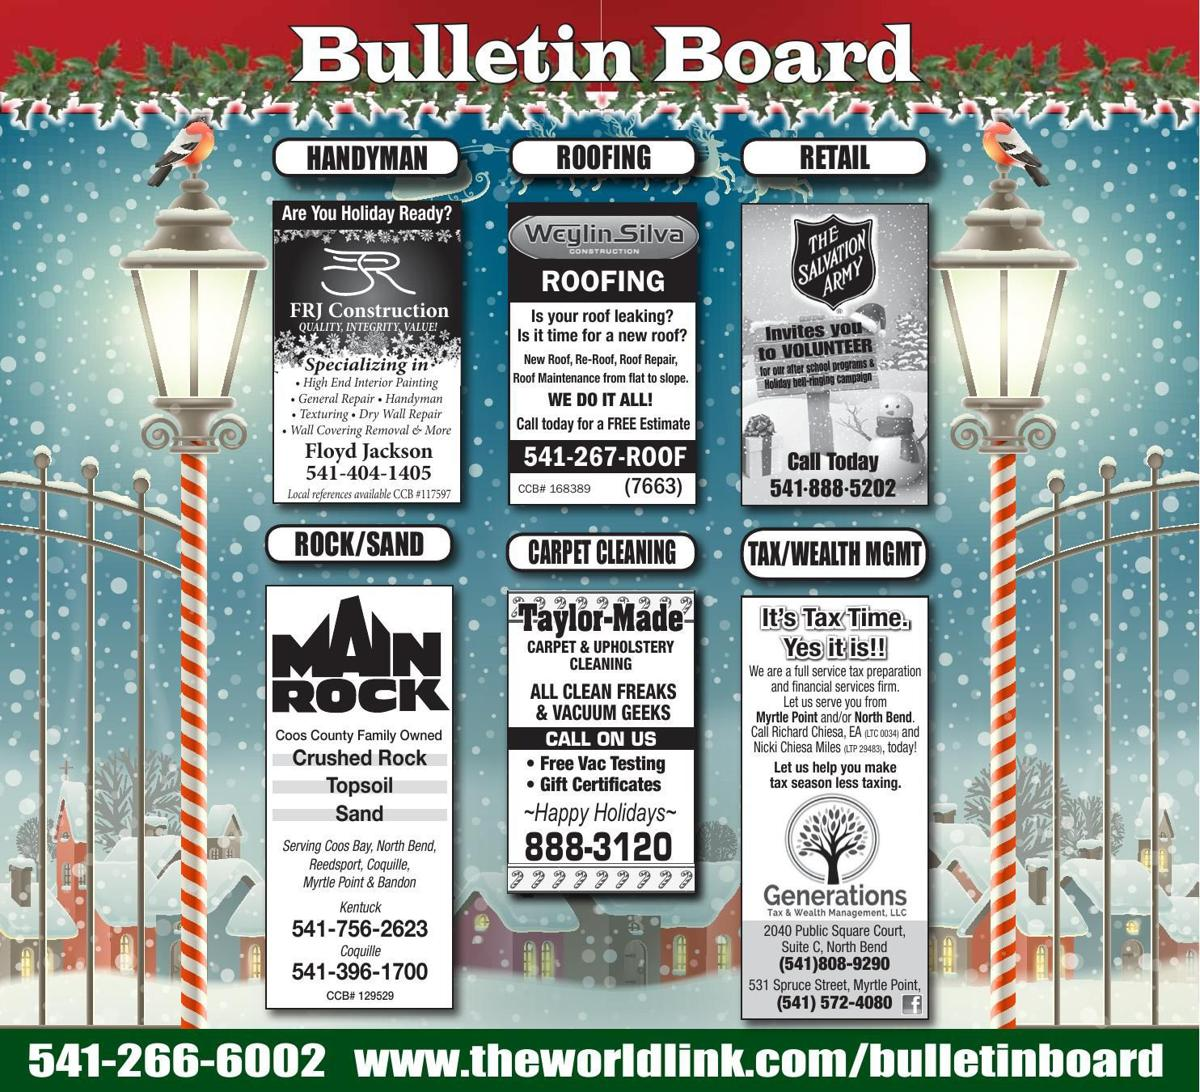 Bulletin Board Week Ending Dec. 9, 2017